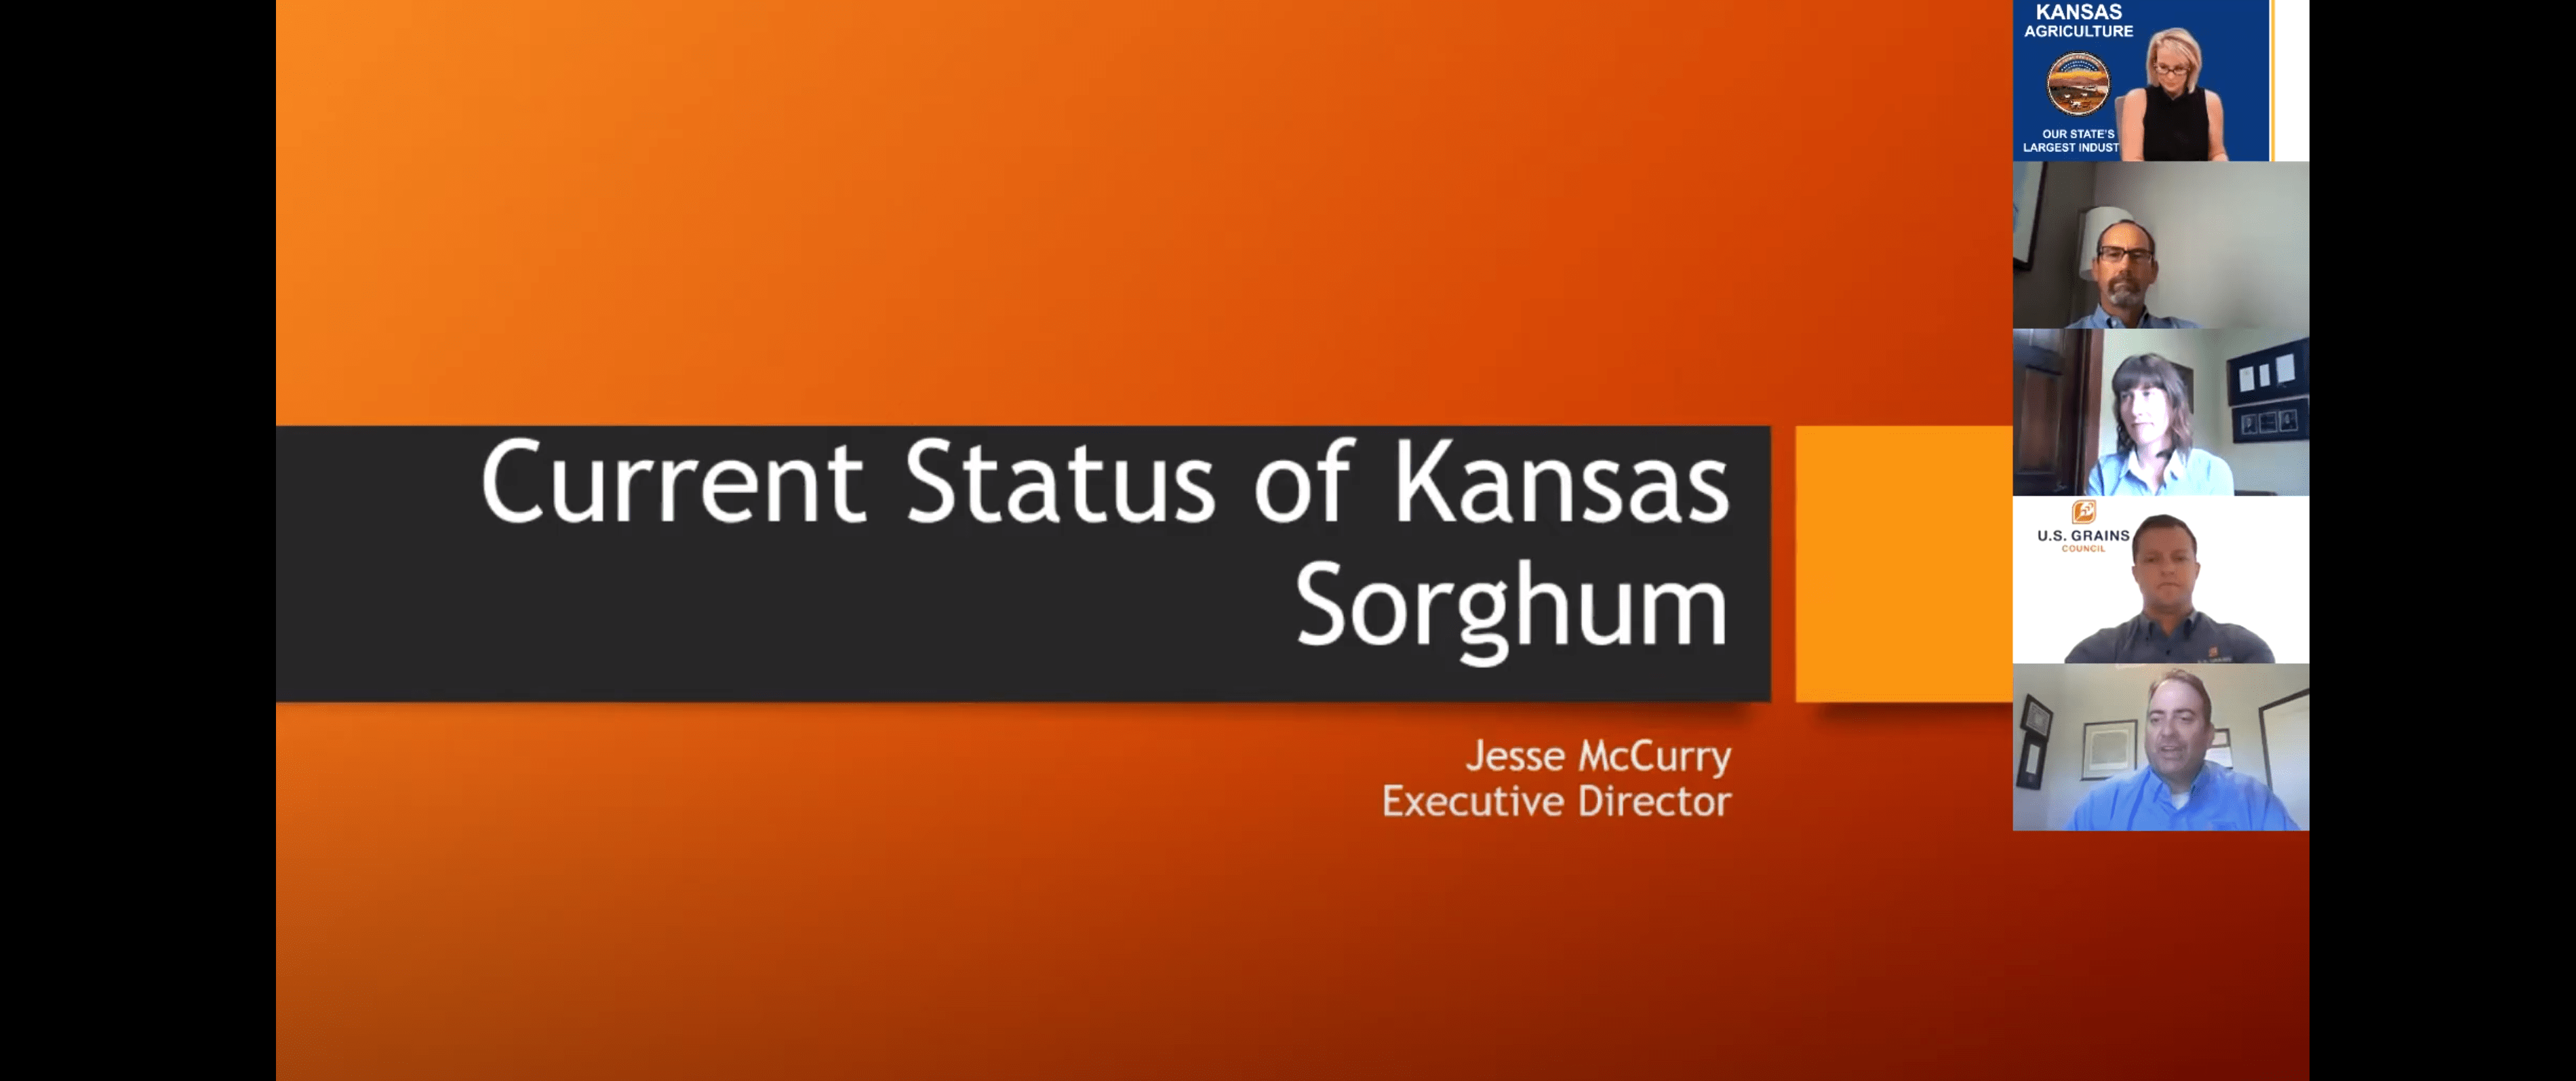 Re-Watch 2020 Kansas Ag Growth Summit's Sorghum Sector Breakout Session